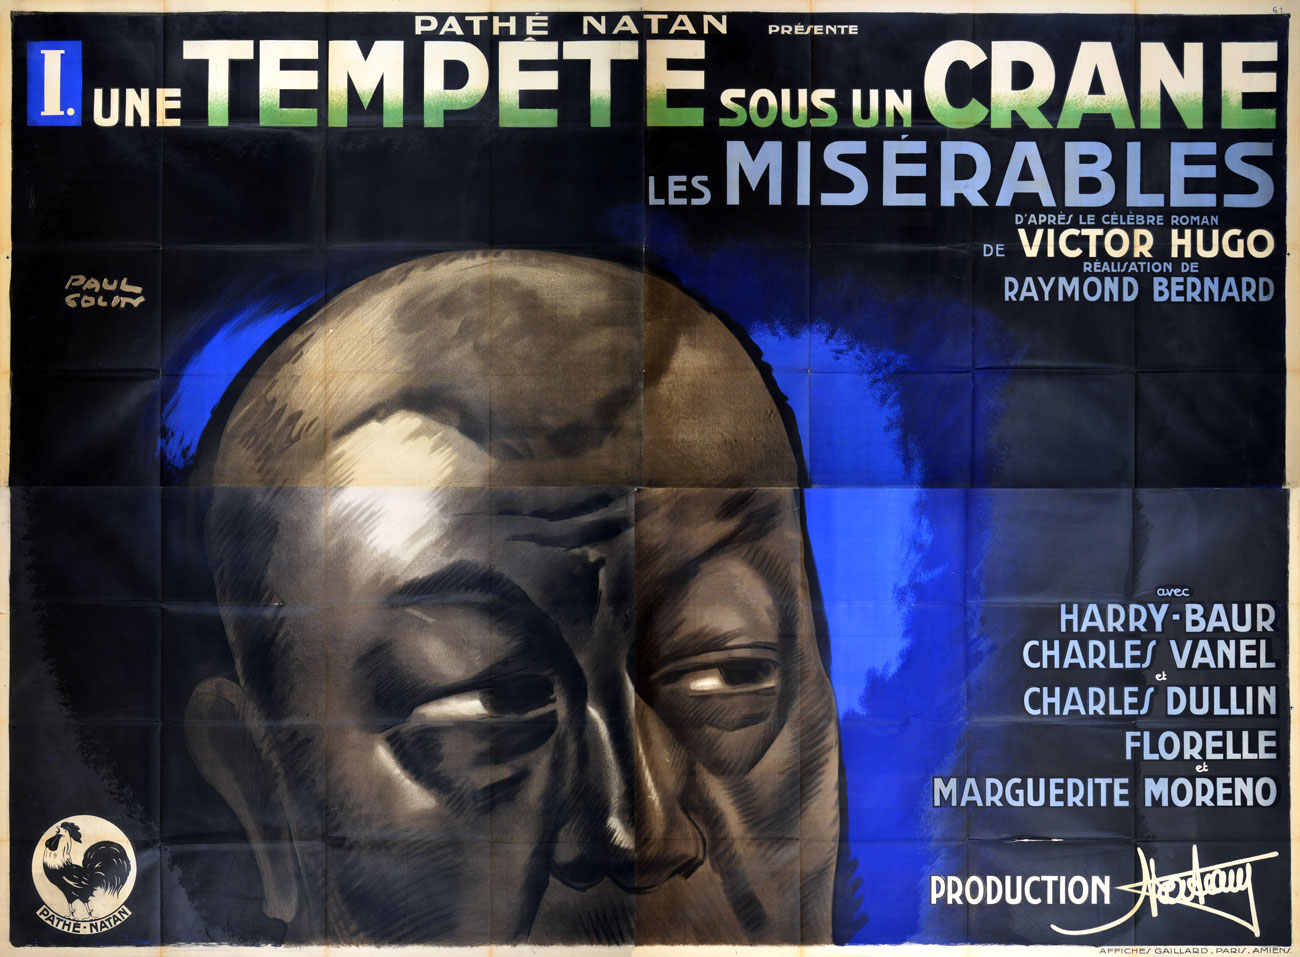 Miserables (les) by Raymond Bernard